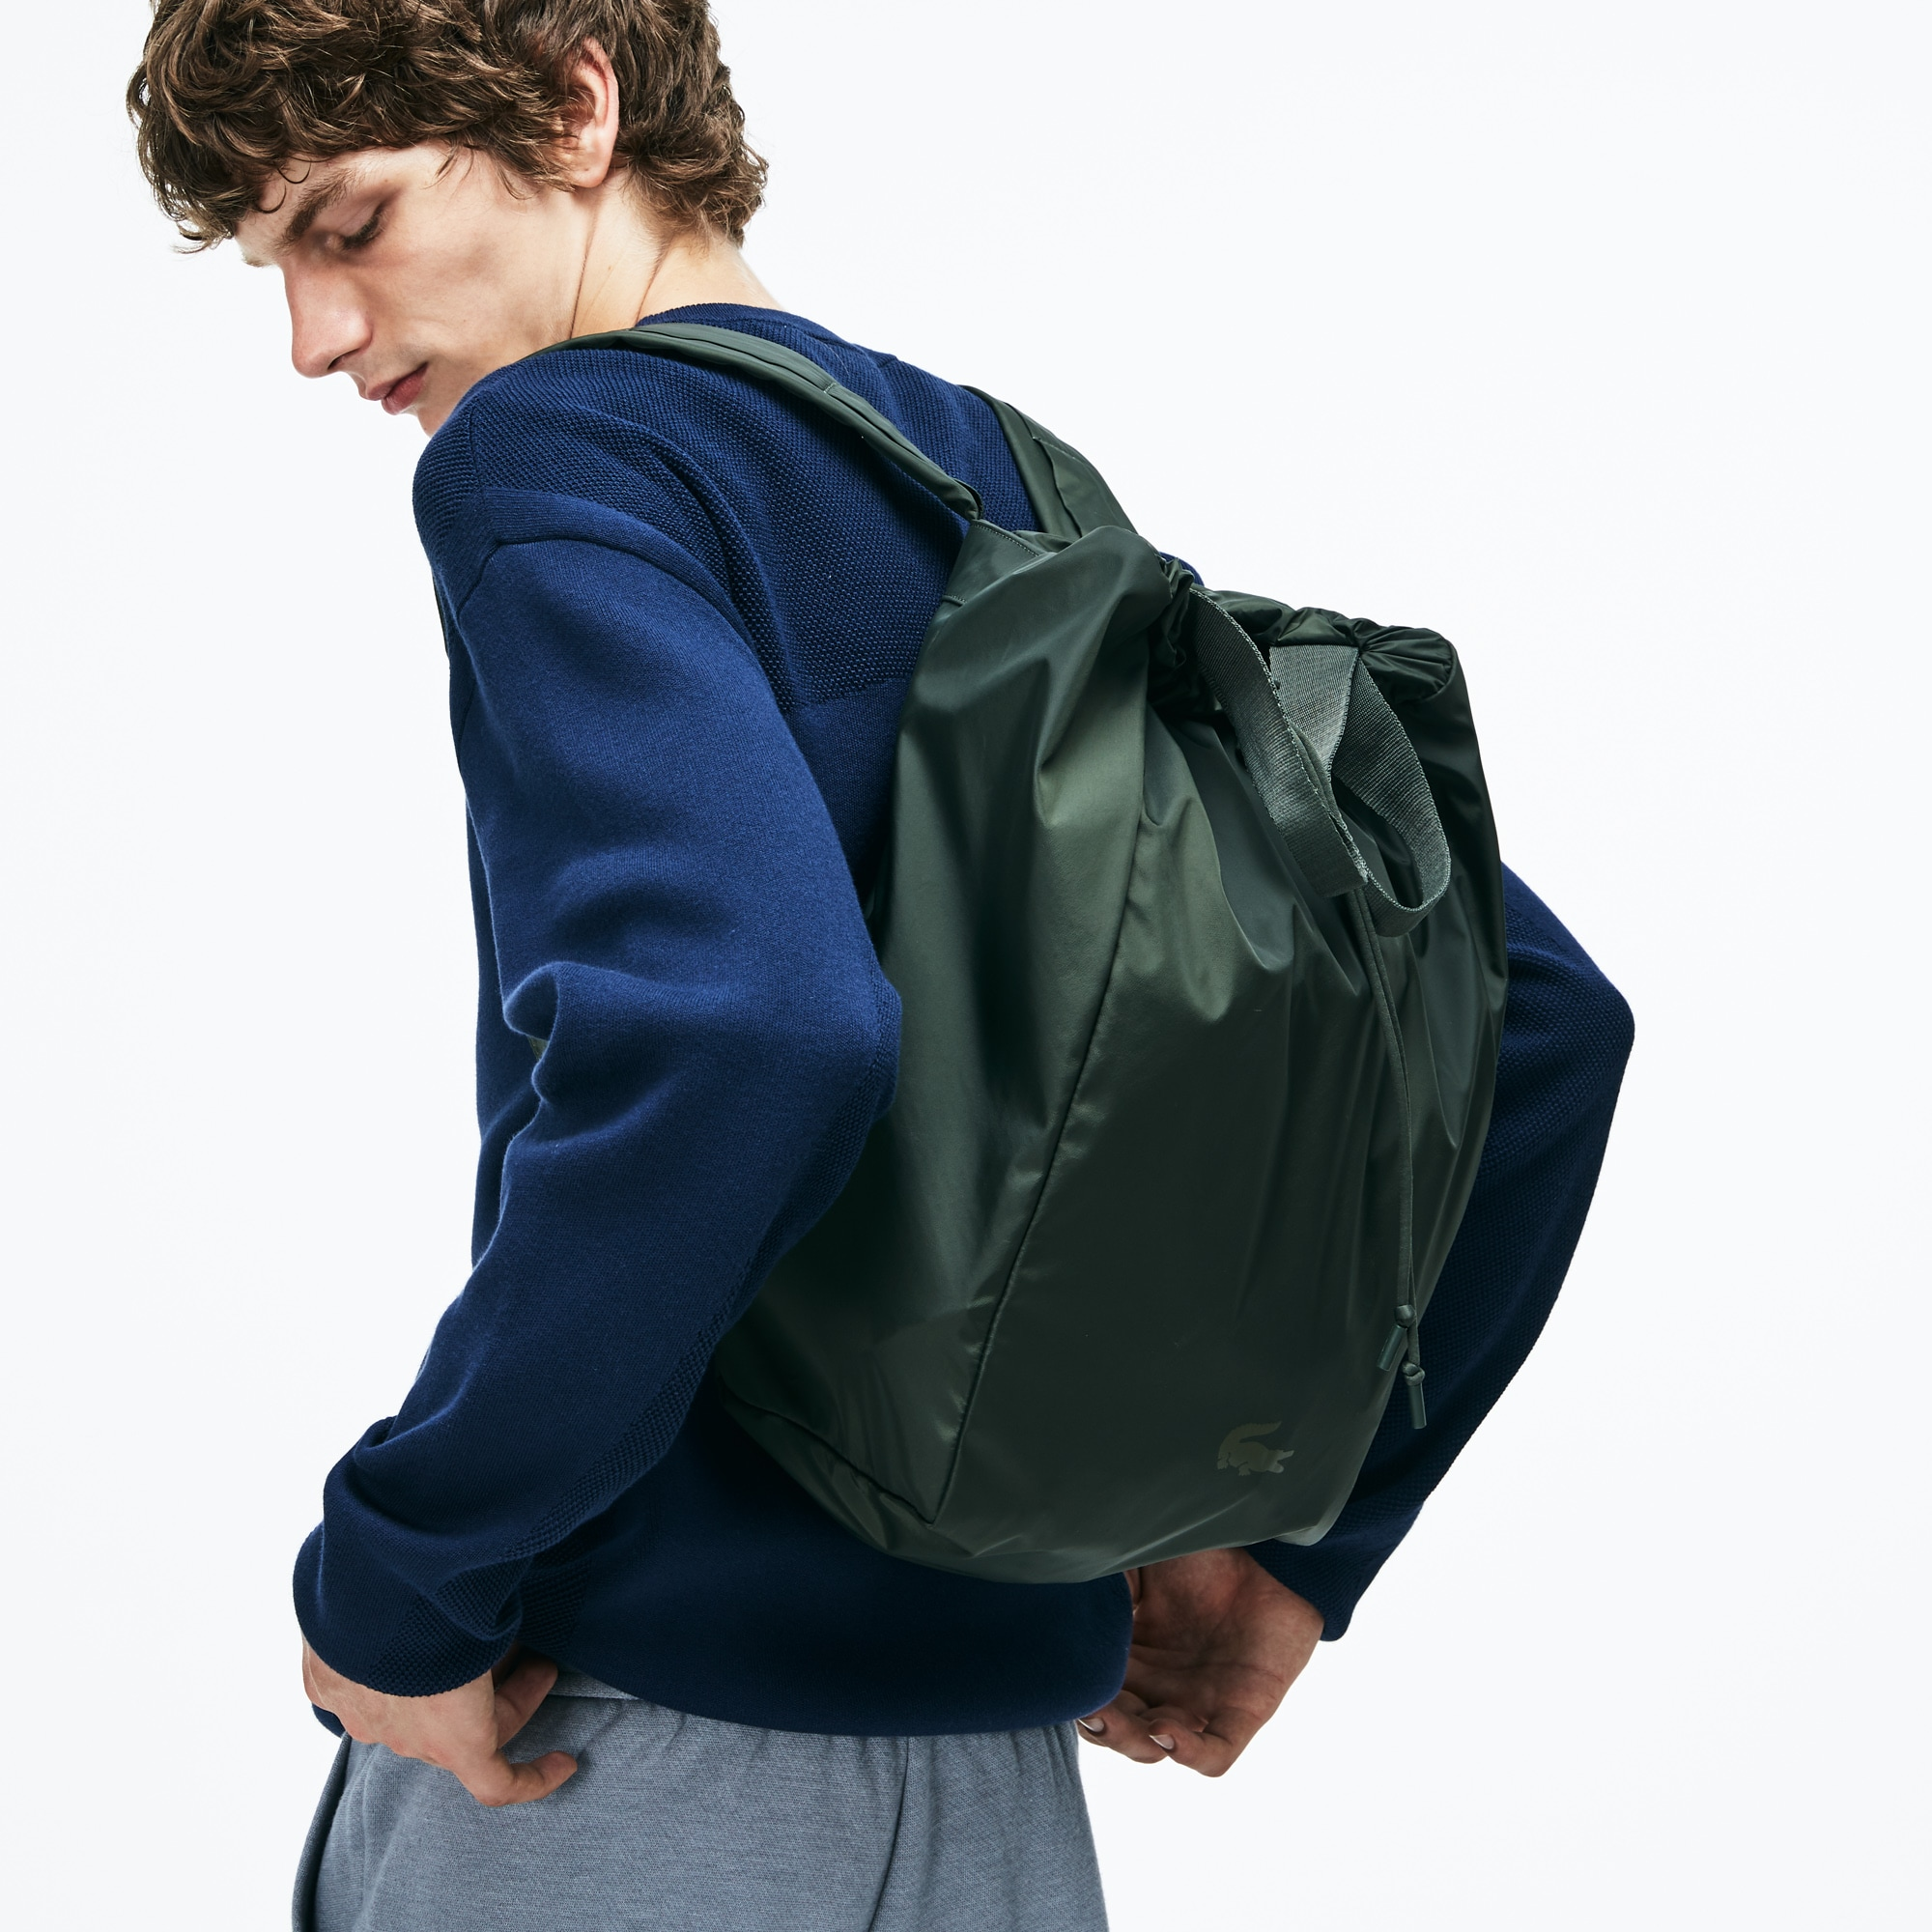 Sac à dos pliable Lacoste Motion en nylon technique uni